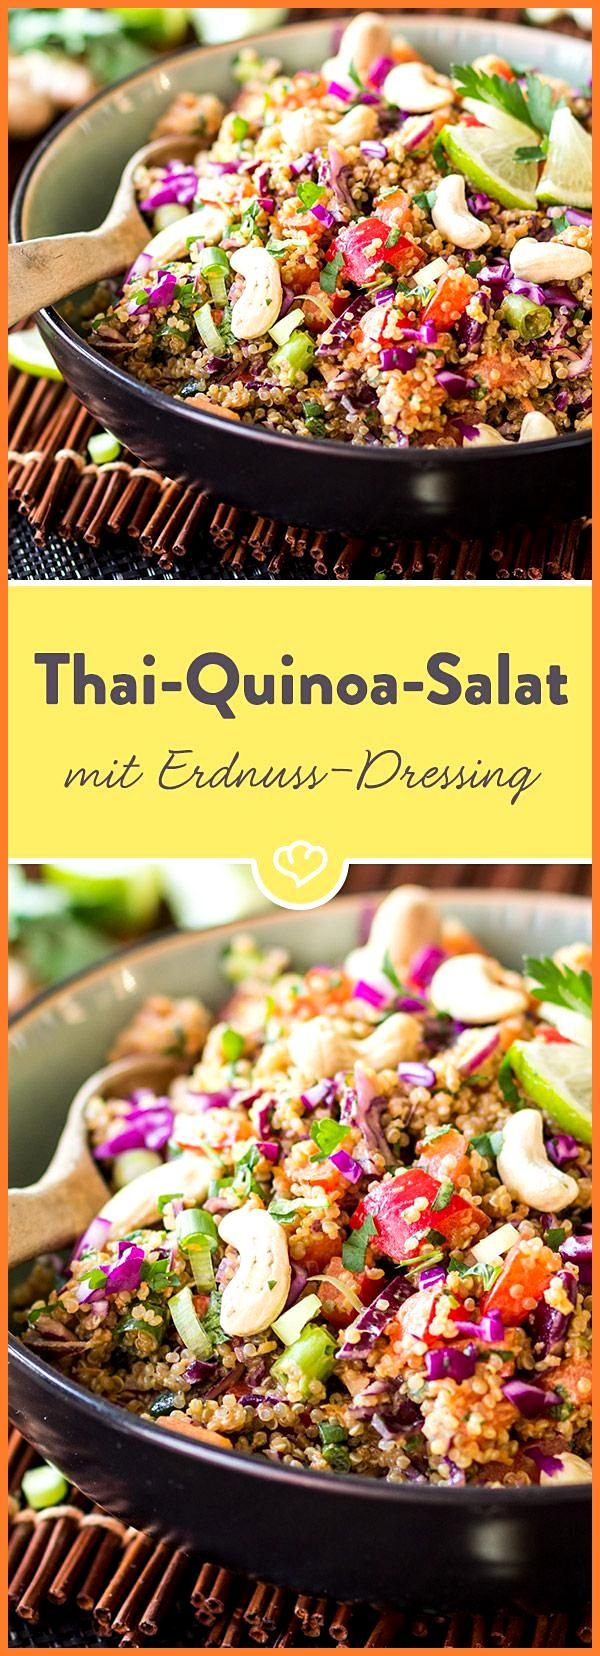 Thai-Quinoa-Salat mit Erdnuss-Ingwer-Dressing #ErdnussIngwerDressing #Fitness food clean eating #Fit...